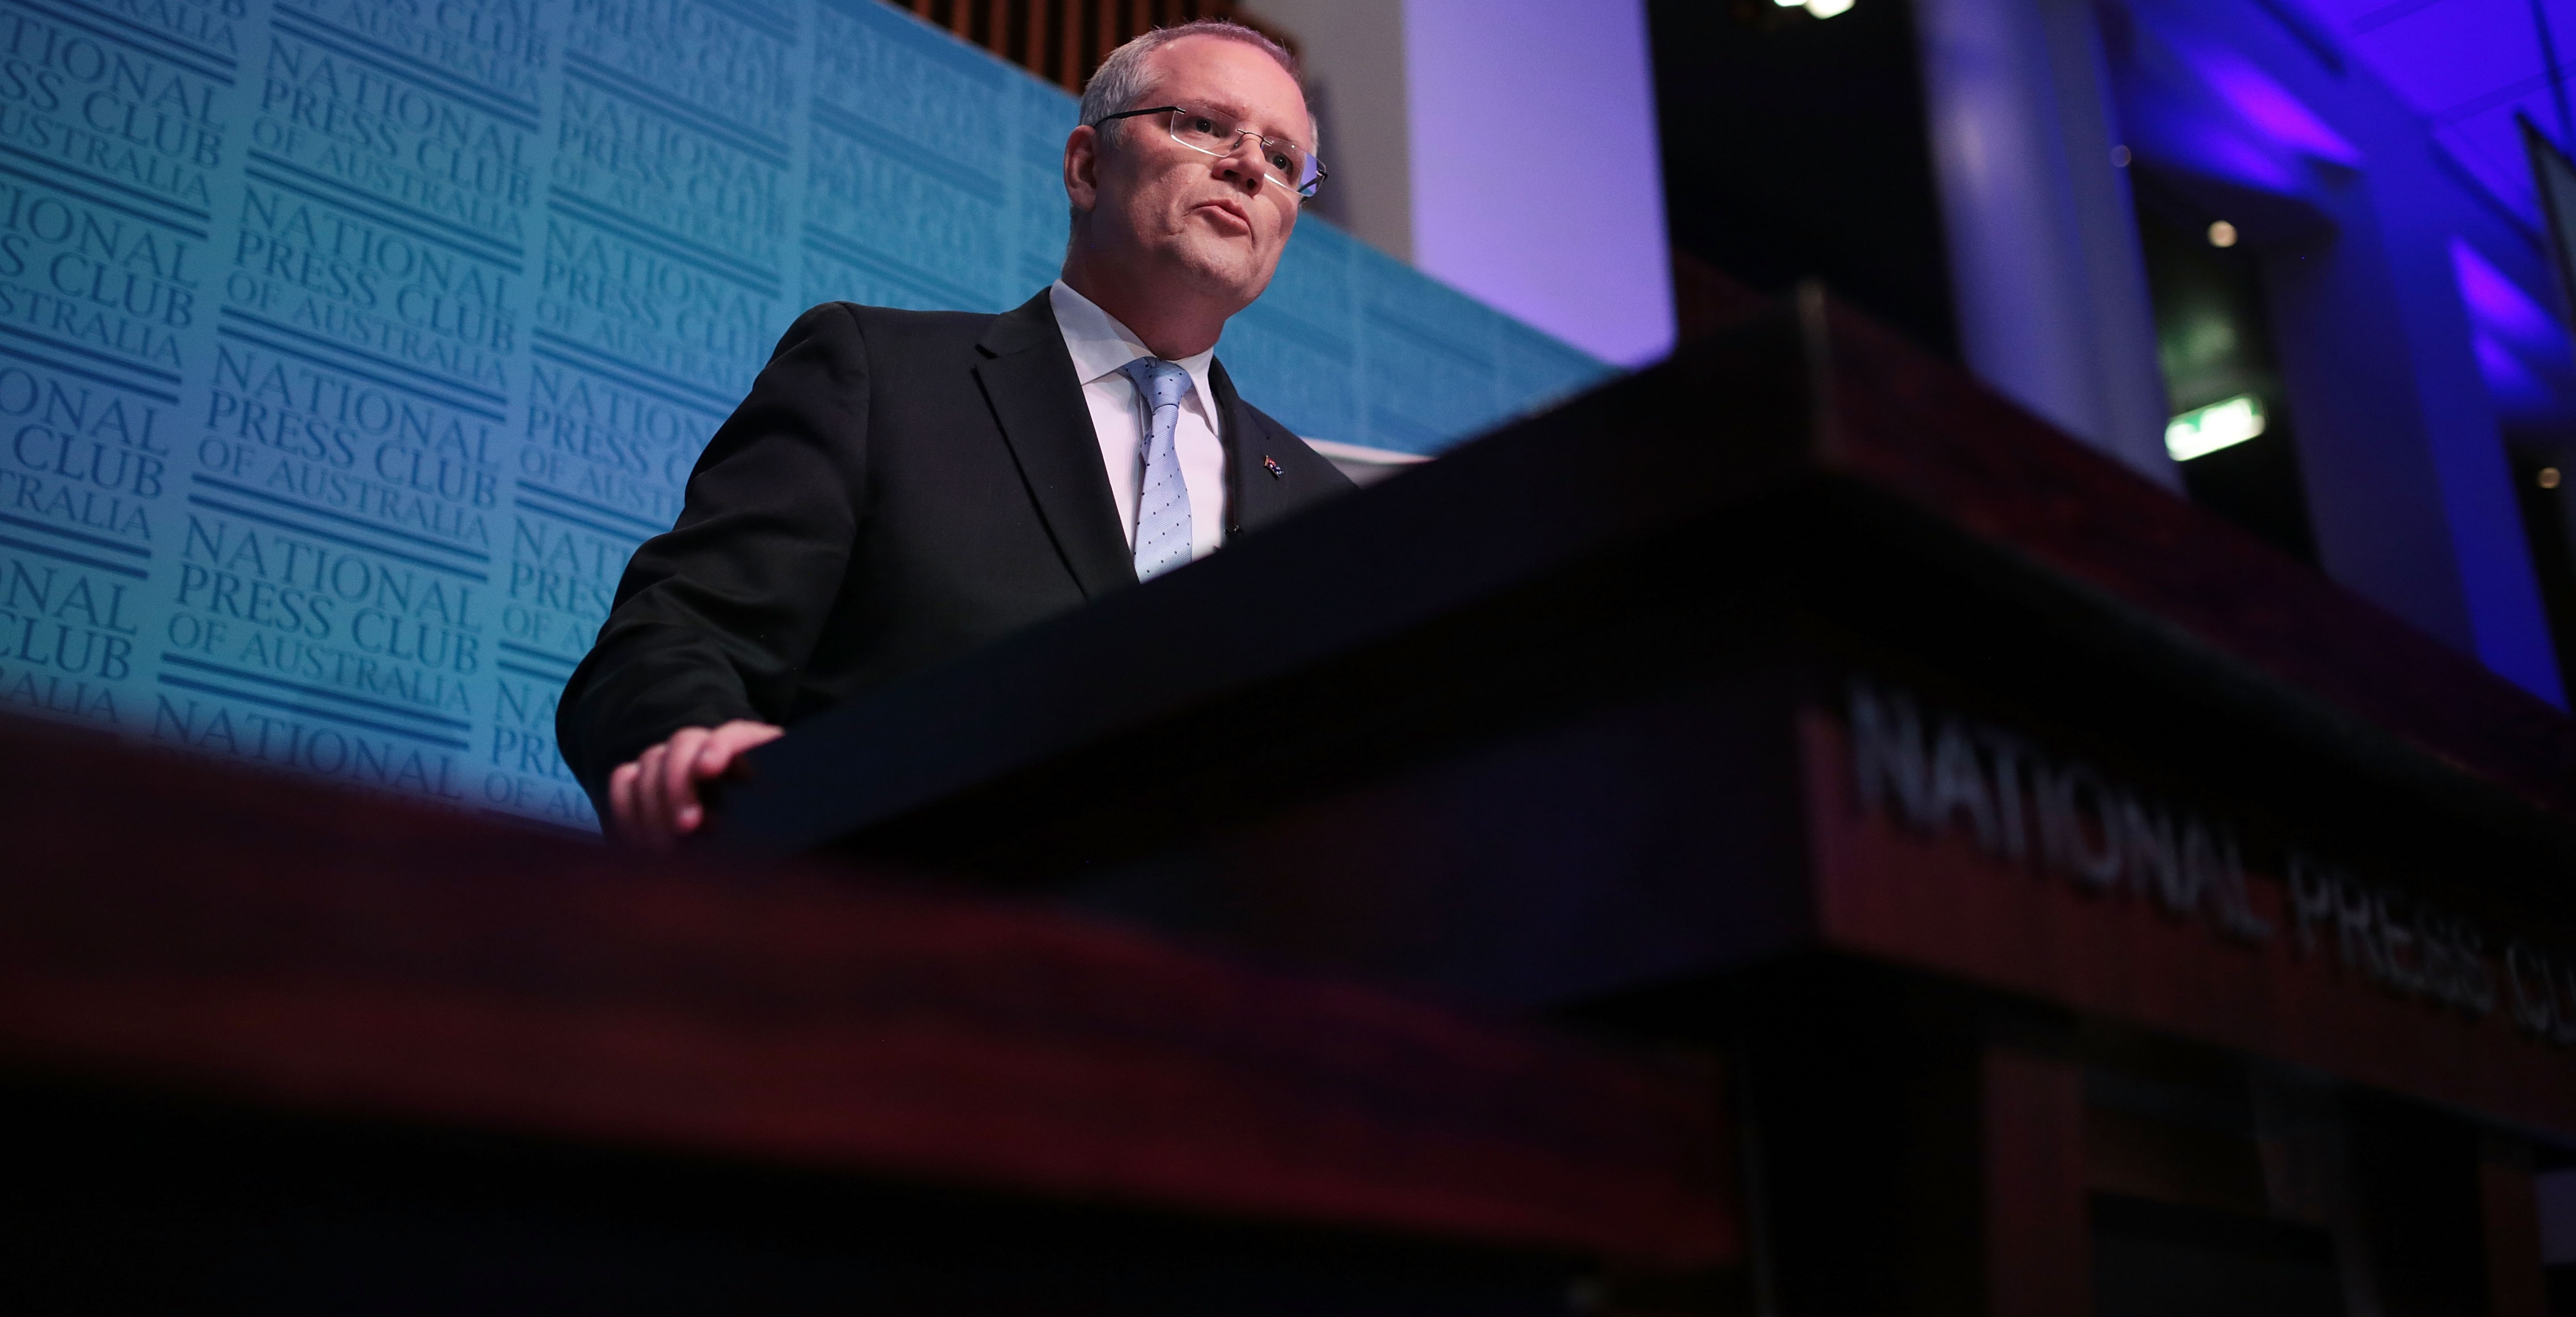 Treasurer Scott Morrison delivers his post-budget address at the National Press Club, May 2017 (Photo: Getty Images/Stefan Postles)